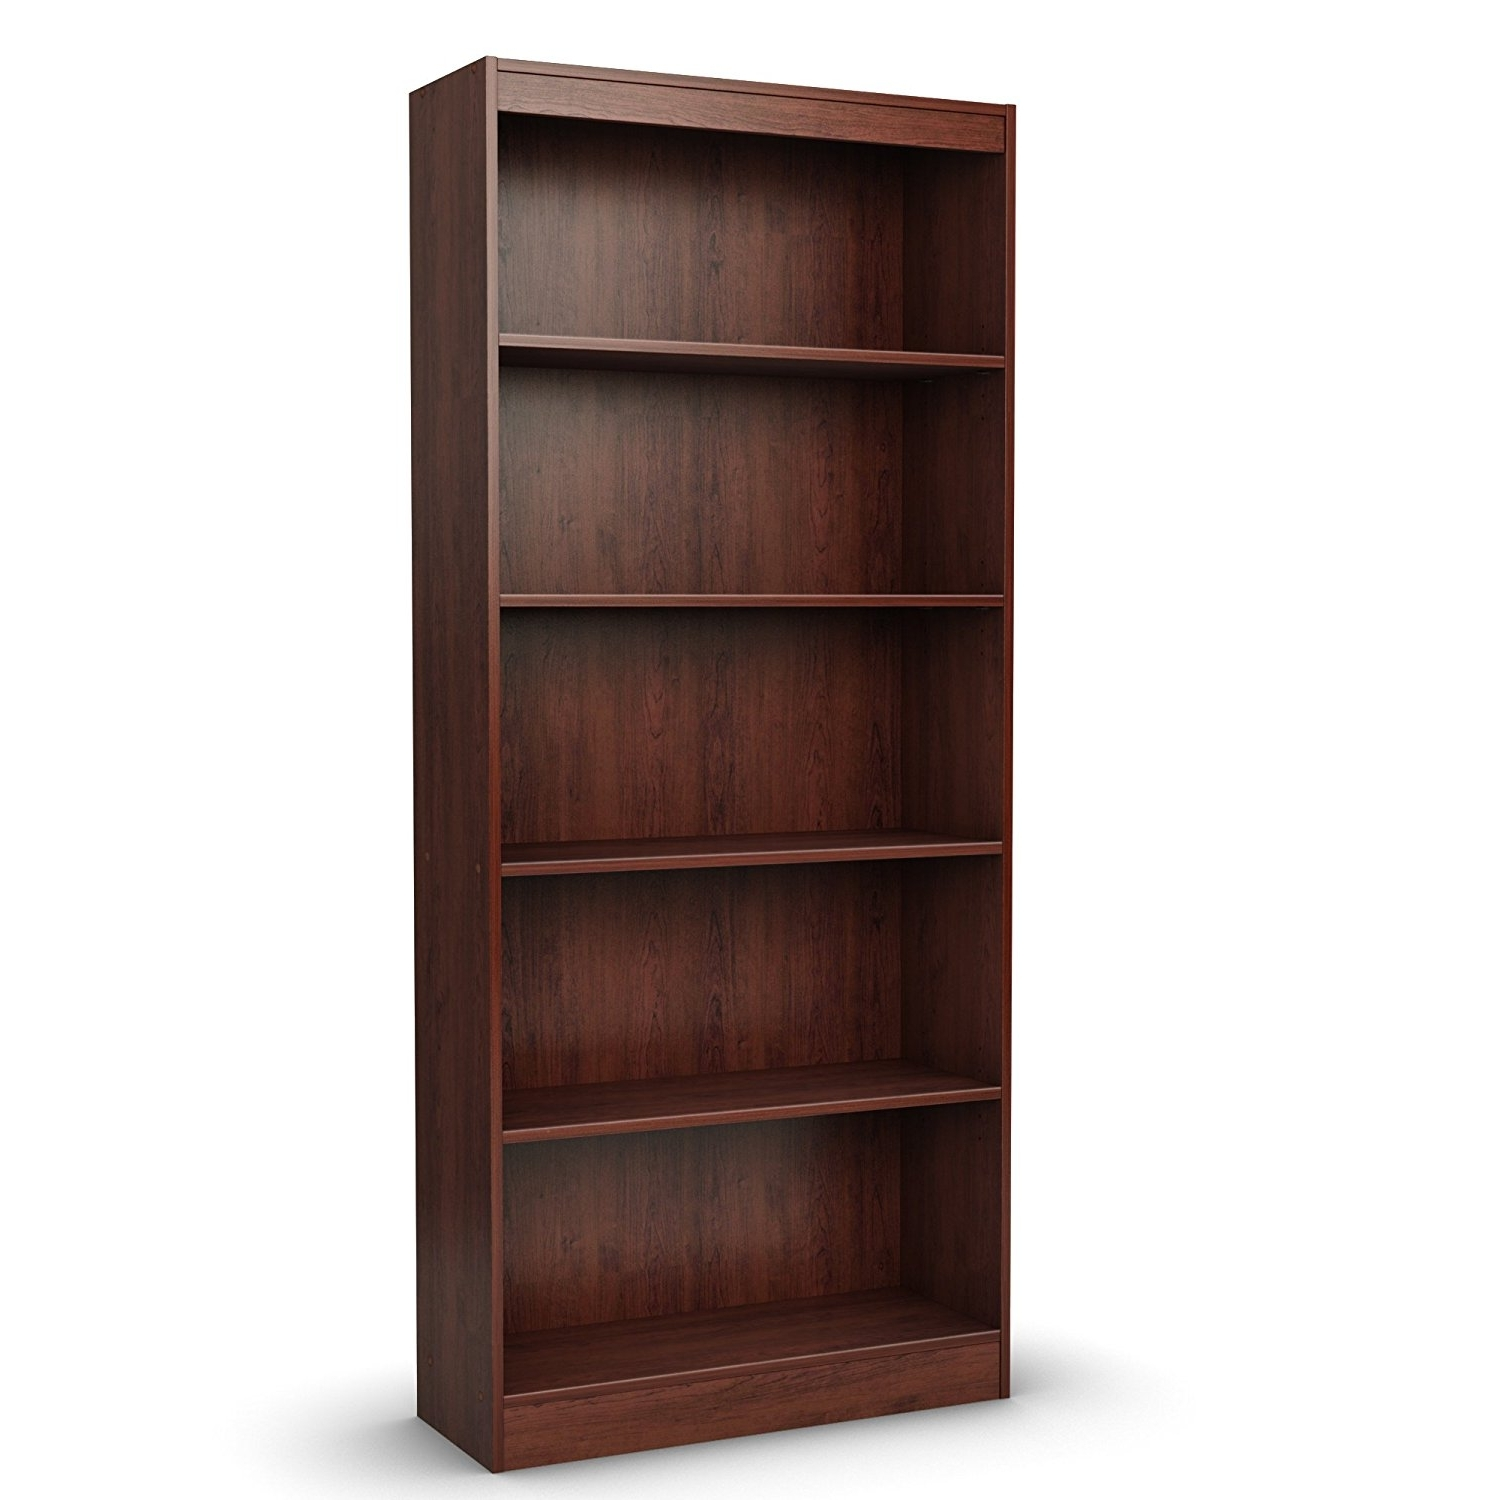 Amazon: South Shore Axess Collection 5 Shelf Bookcase, Royal With Widely Used South Shore Axess Collection 5 Shelf Bookcases (View 4 of 15)